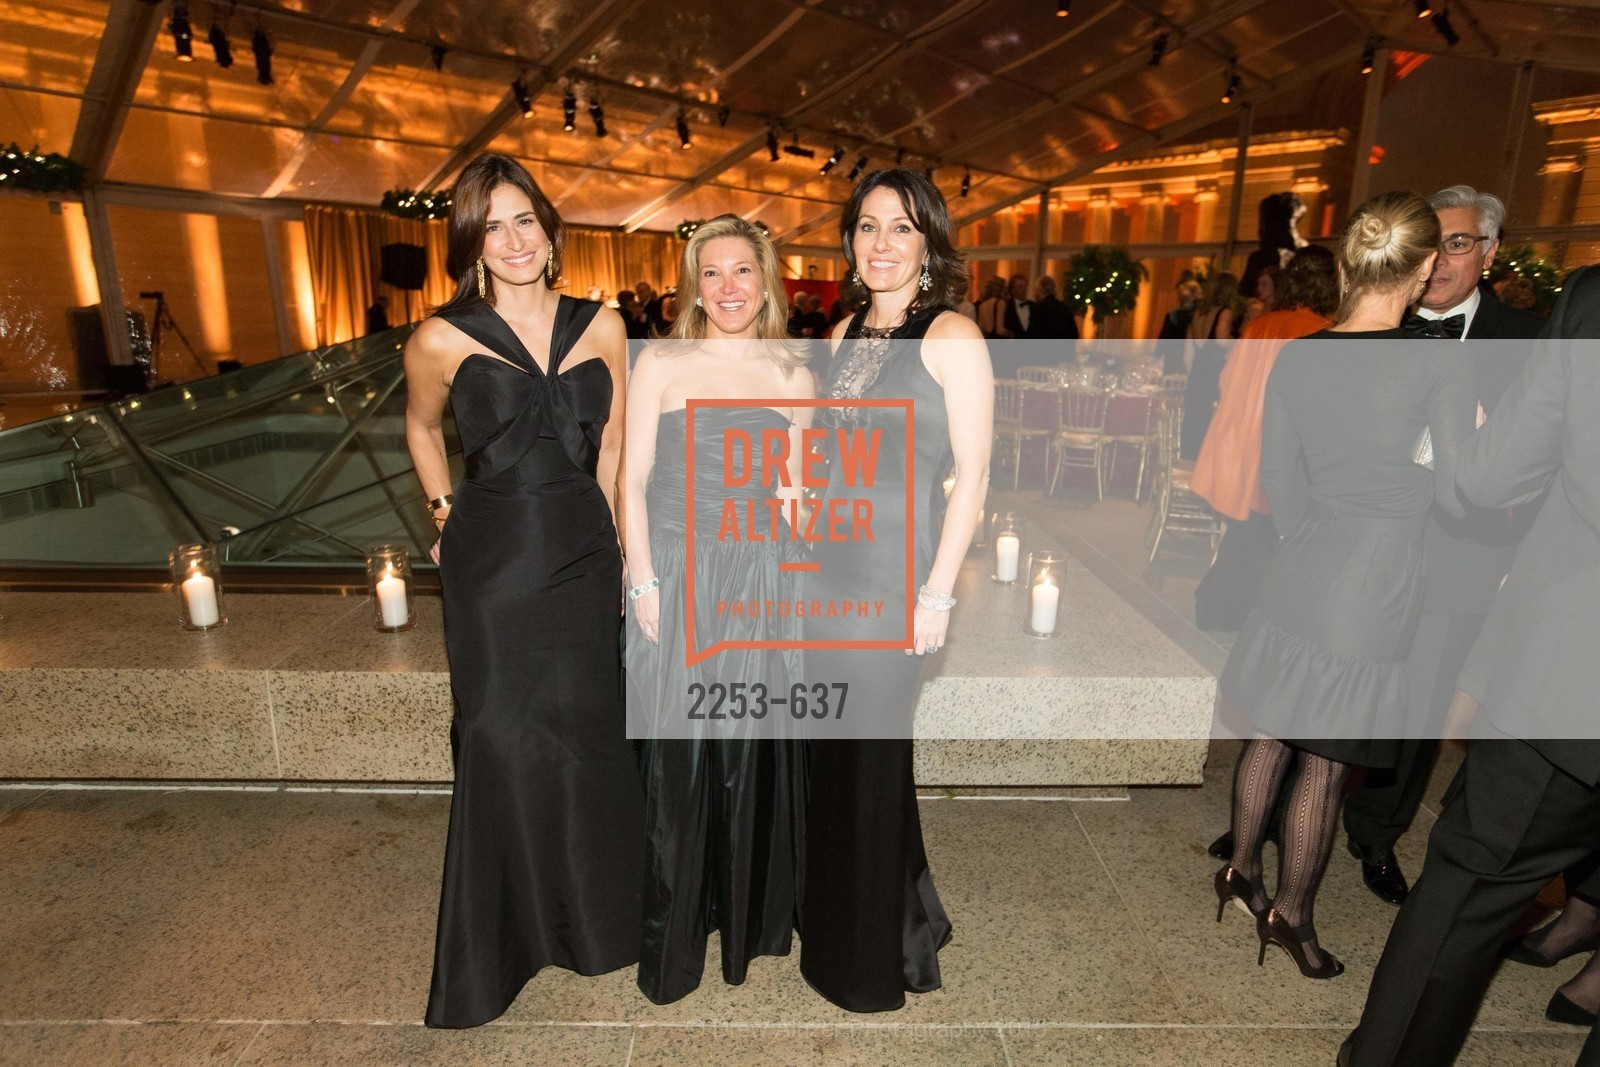 Amy Mcknight, Kathryn Lasater, Beth Grossman, AN ELEGANT EVENING Presented by the Fine Arts Museums of San Francisco, Legion of Honor, Court of Honor. 100 34th Ave, December 8th, 2015,Drew Altizer, Drew Altizer Photography, full-service agency, private events, San Francisco photographer, photographer california